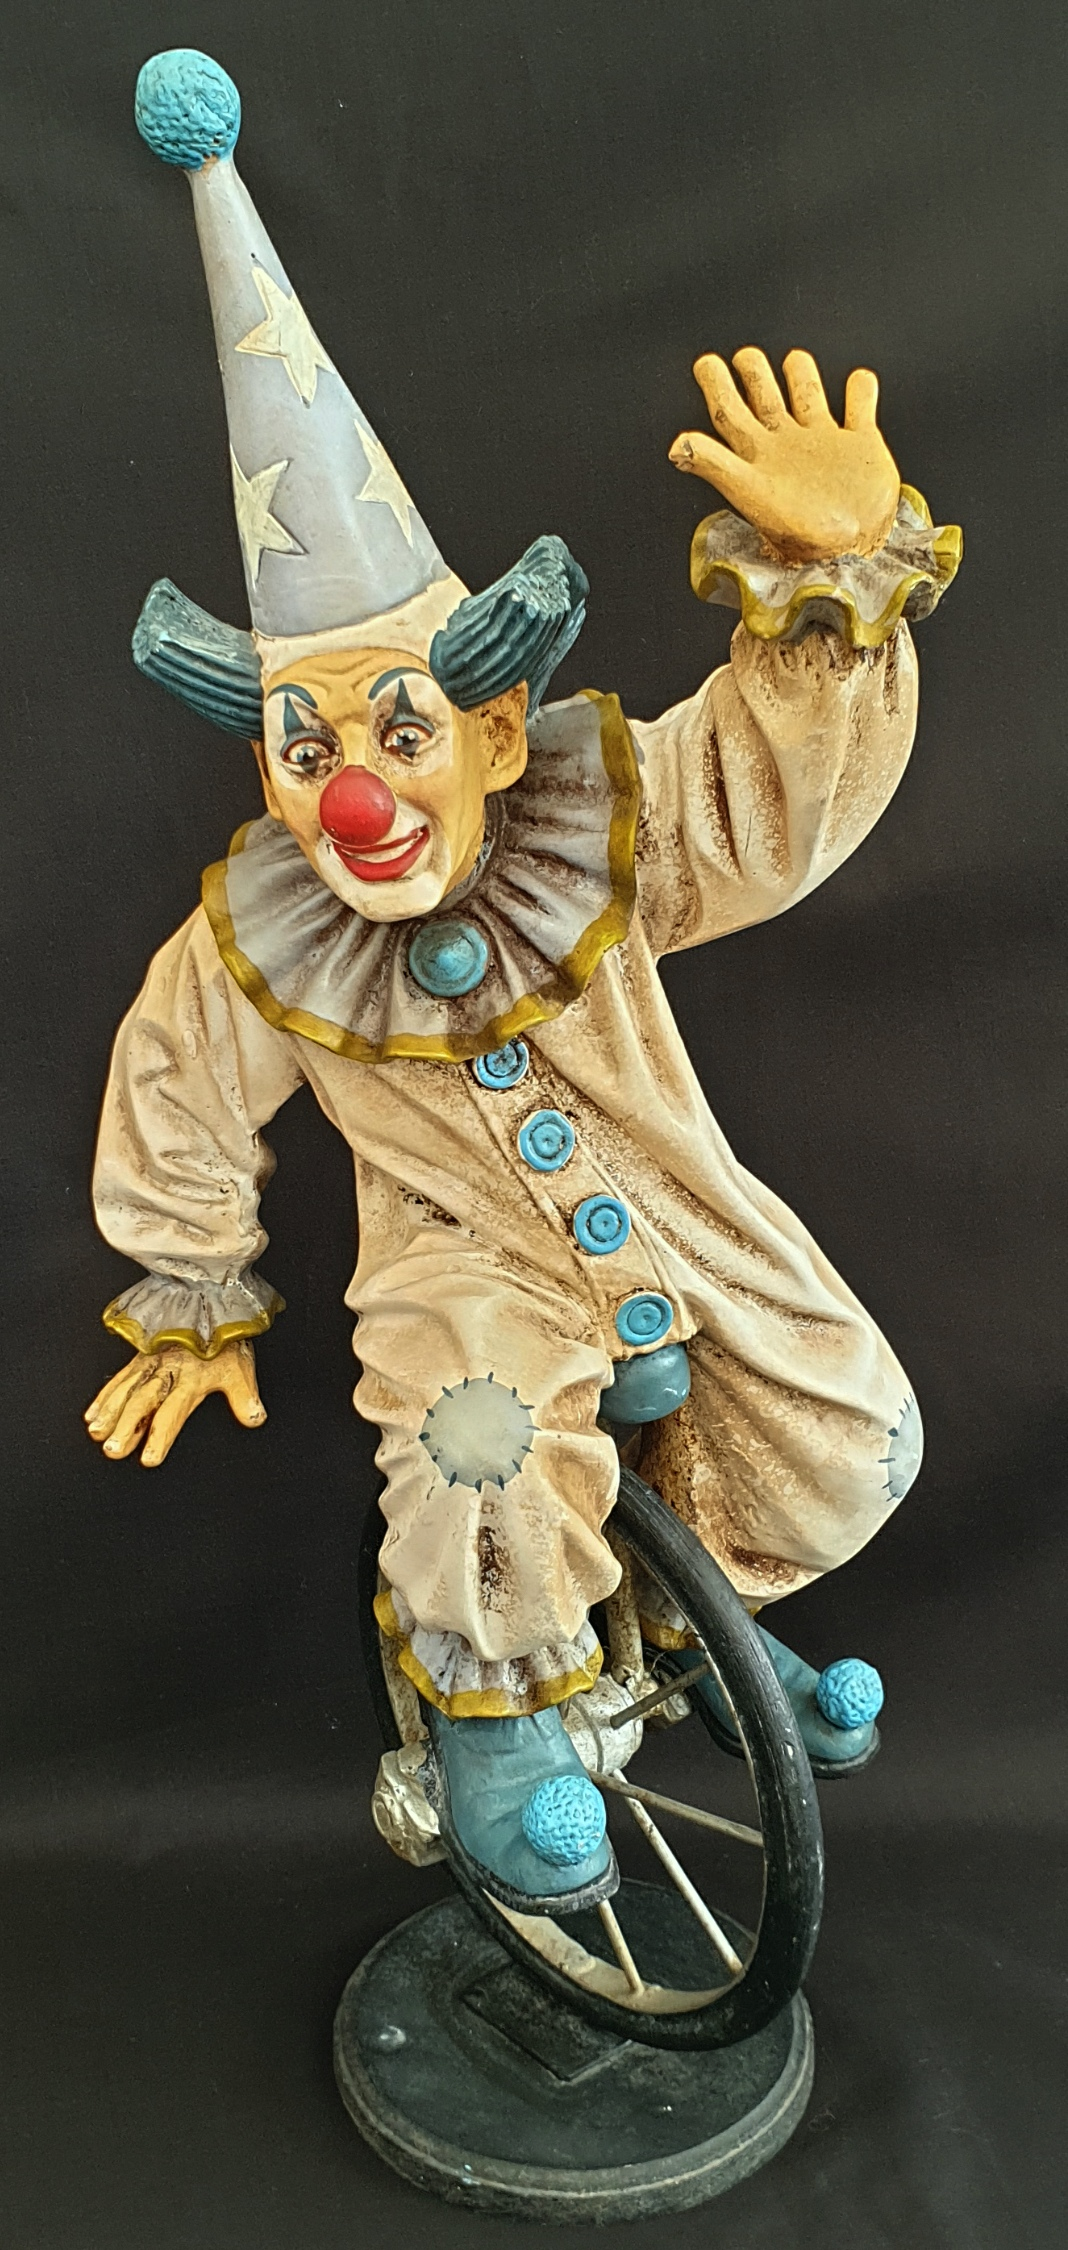 Vintage Collectable Model Clown One on A Mono Cycle - Image 2 of 4